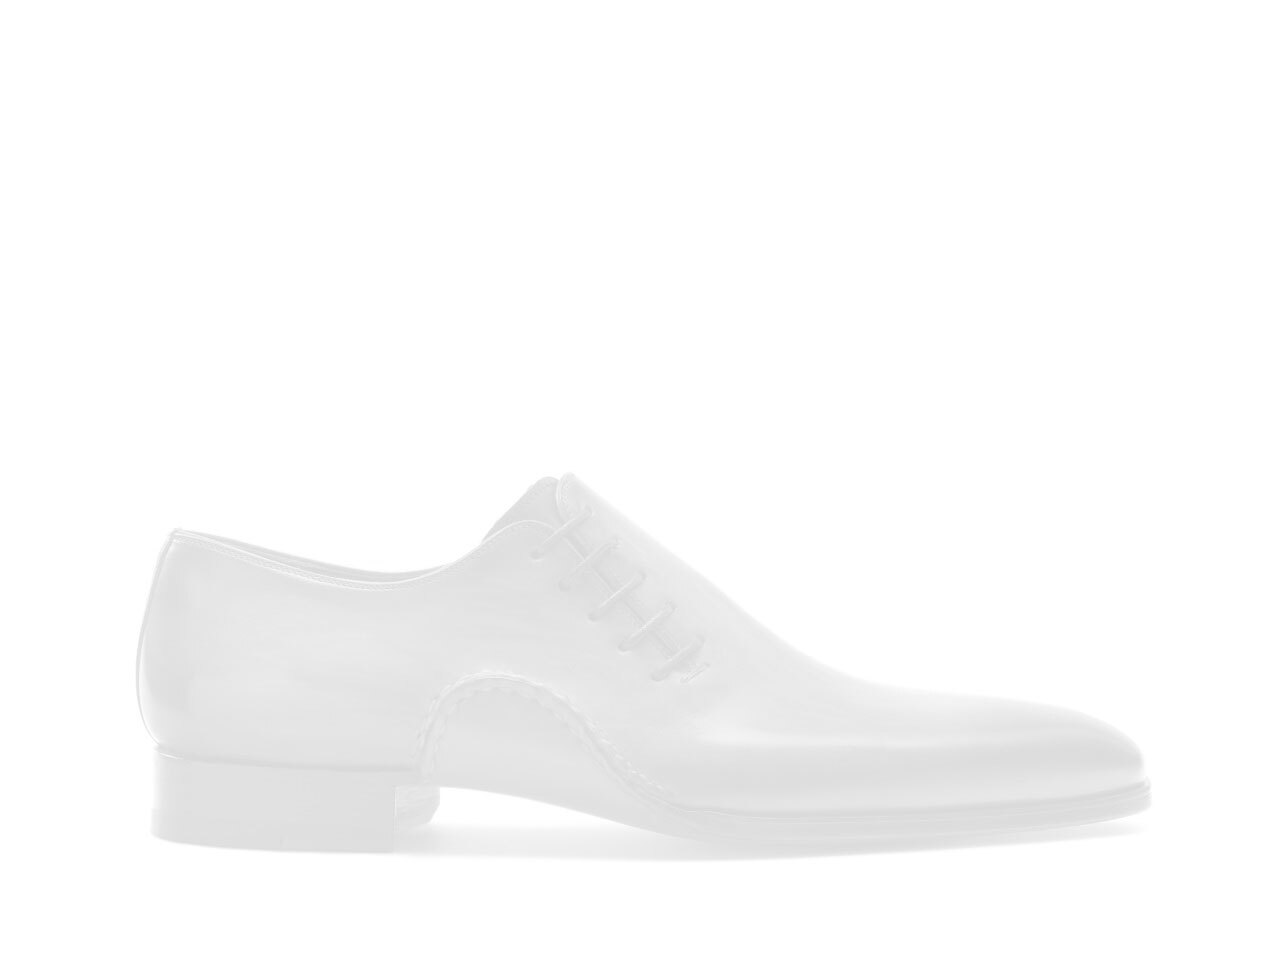 Side view of the Magnanni Turo Lo Grey Men's Sneakers